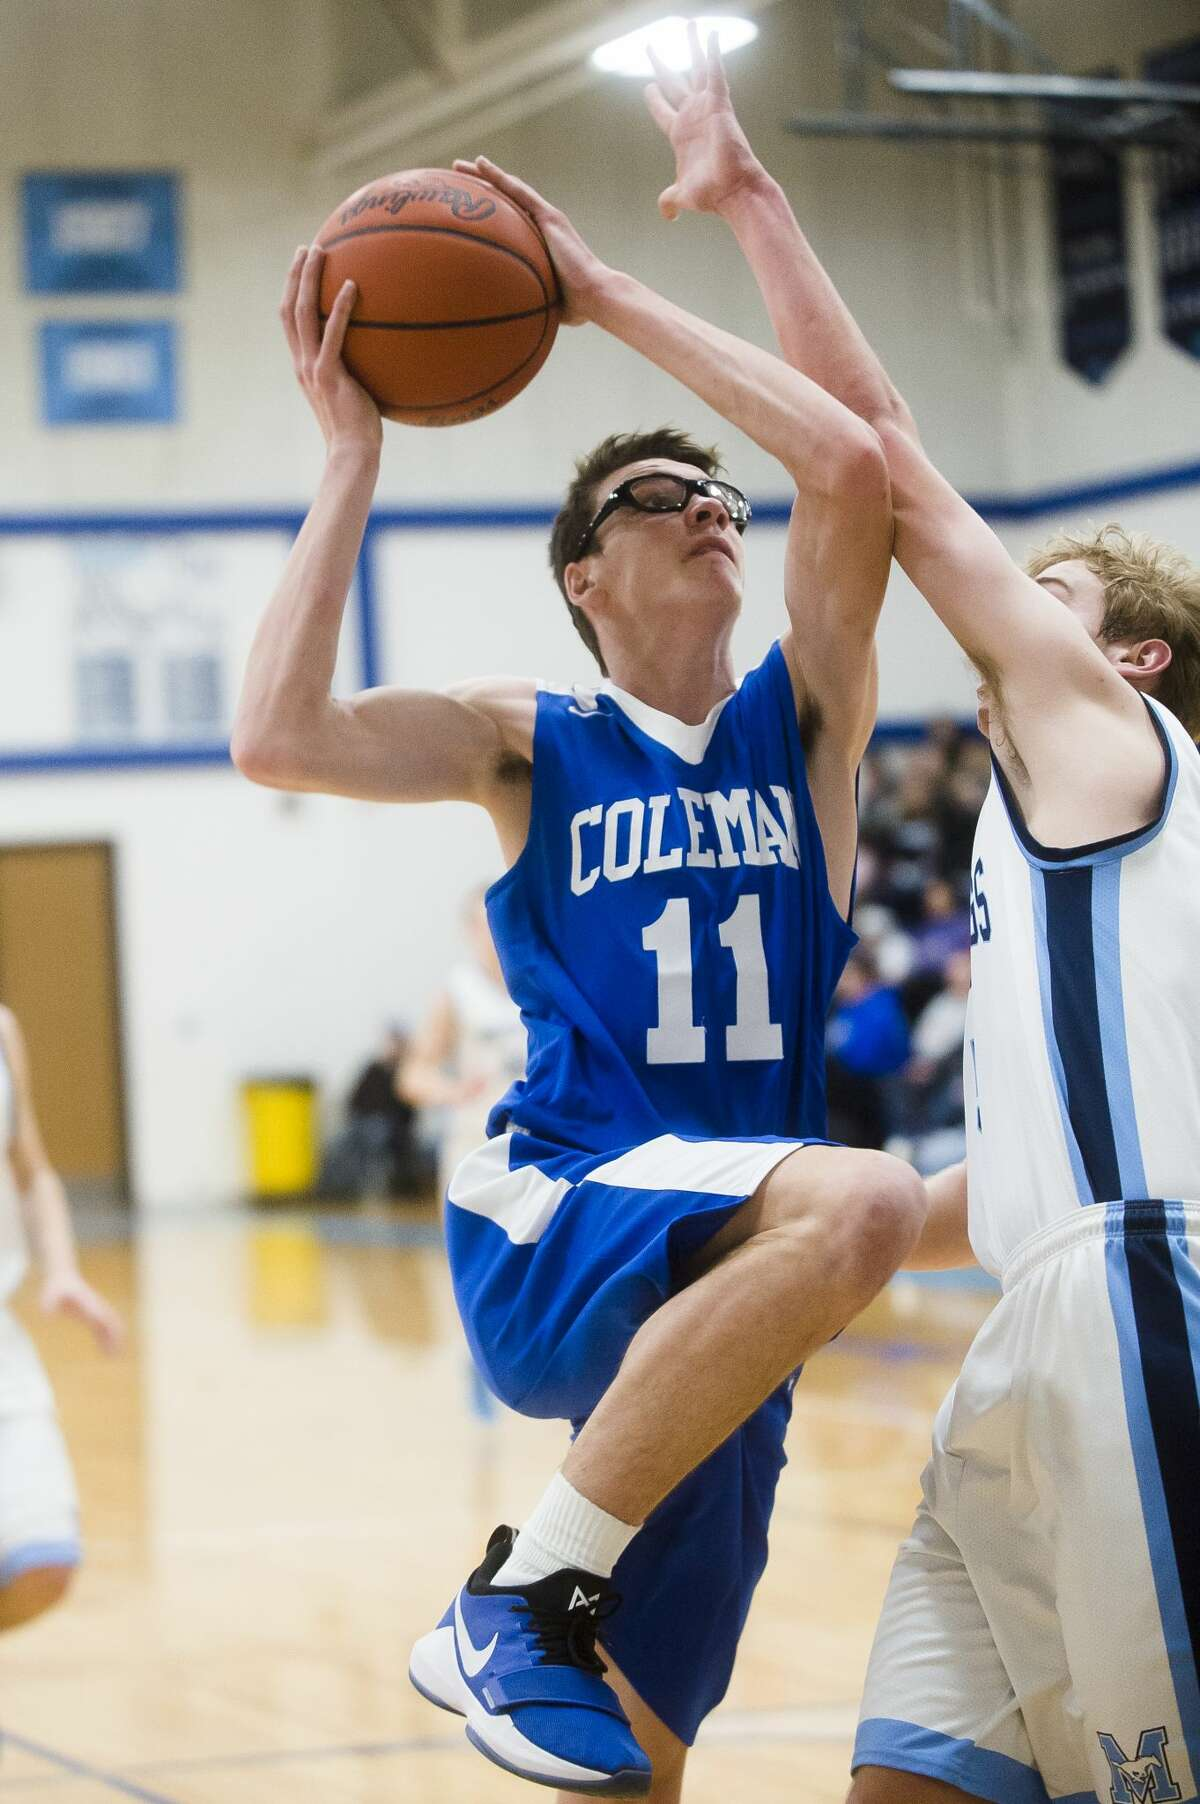 Coleman sophomore Connor Arnold takes a shot while Meridian senior Garrett Stockford guards him during their district semifinals game on Wednesday, March 7, 2018 at Meridian High School. (Katy Kildee/kkildee@mdn.net)